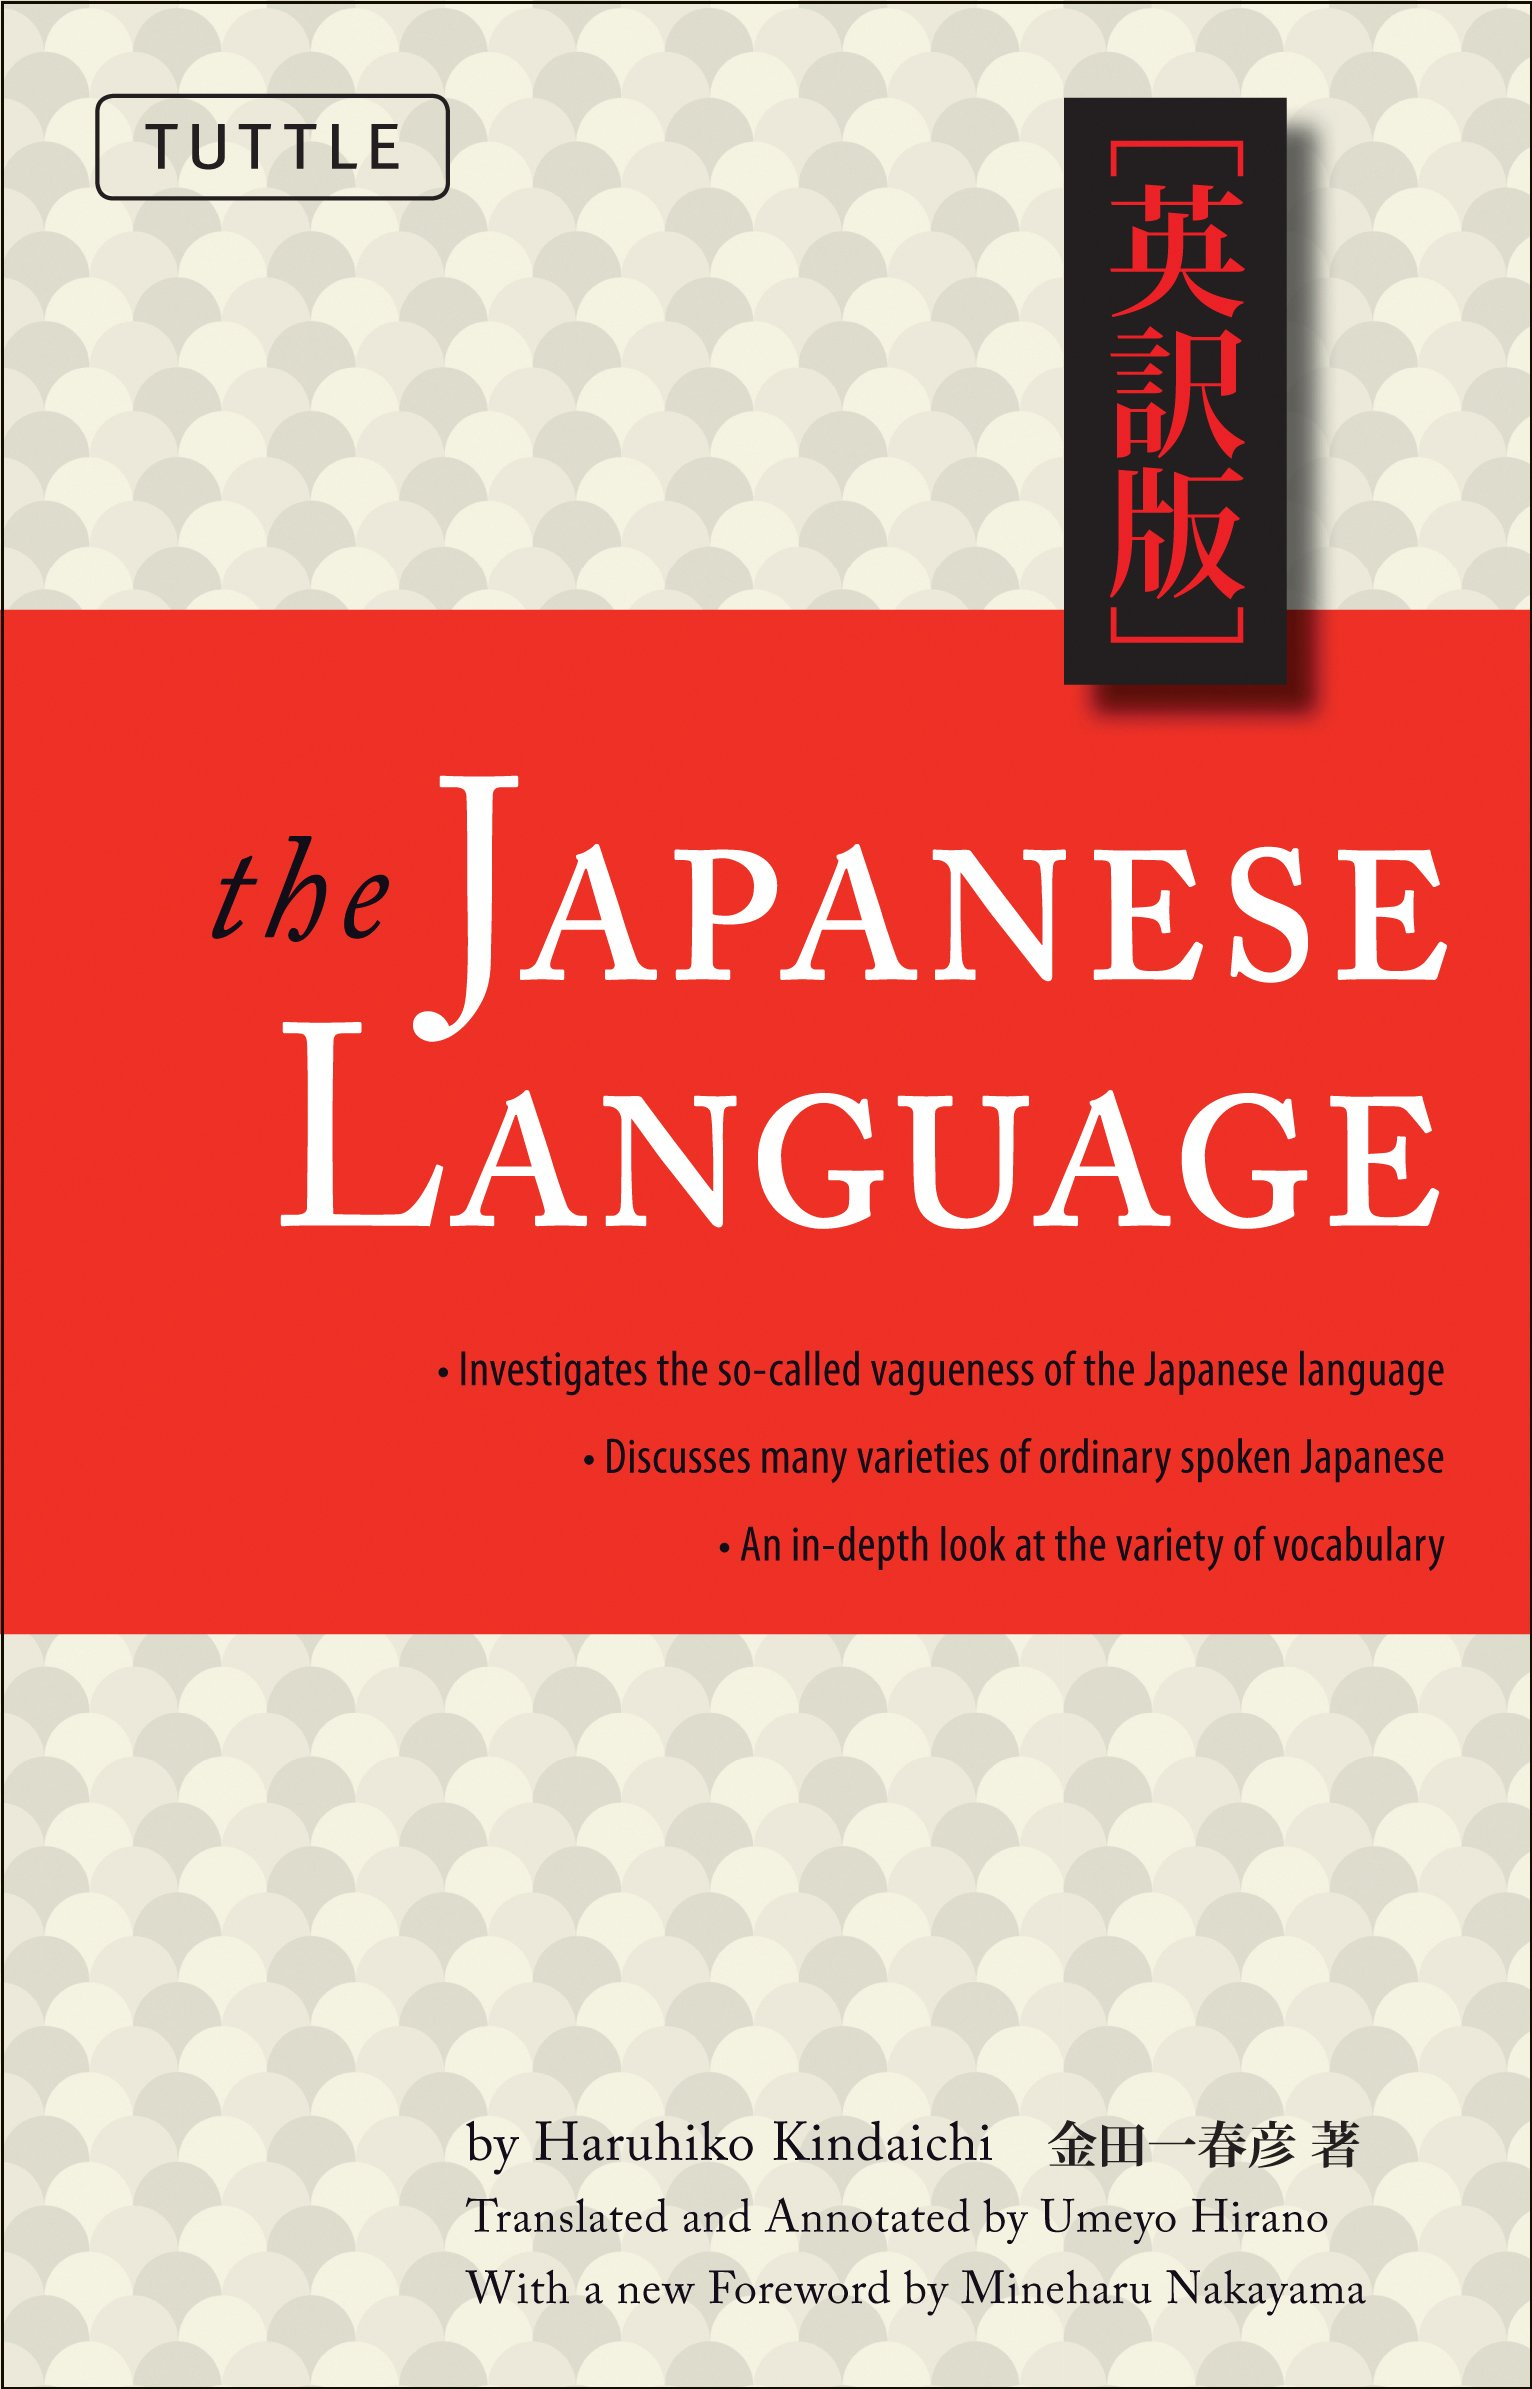 Download The Japanese Language: Learn the Fascinating History and Evolution of the Language Along With Many Useful Japanese Grammar Points PDF